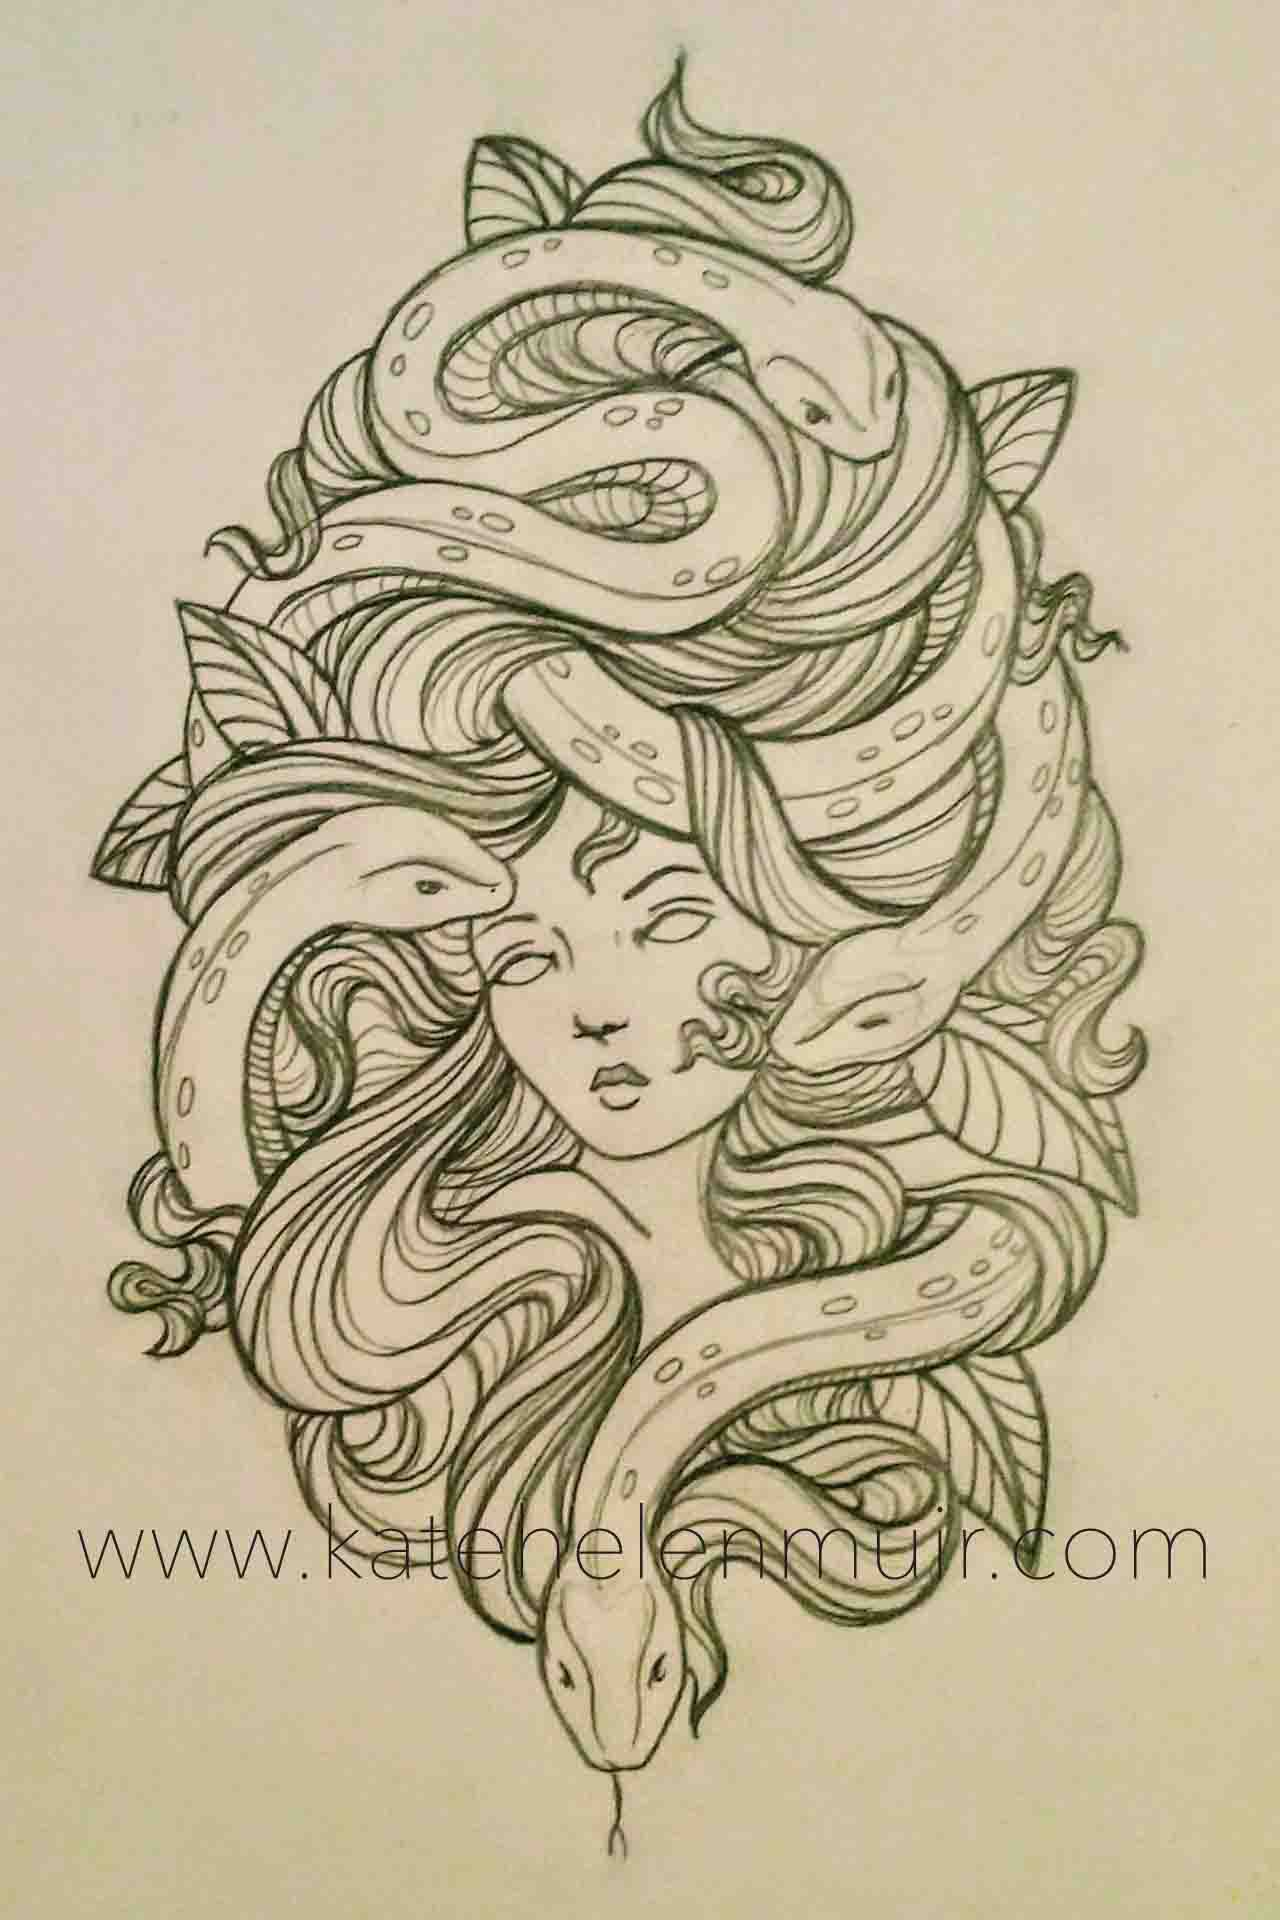 Medusa Tattoo Design Katehelenmuir